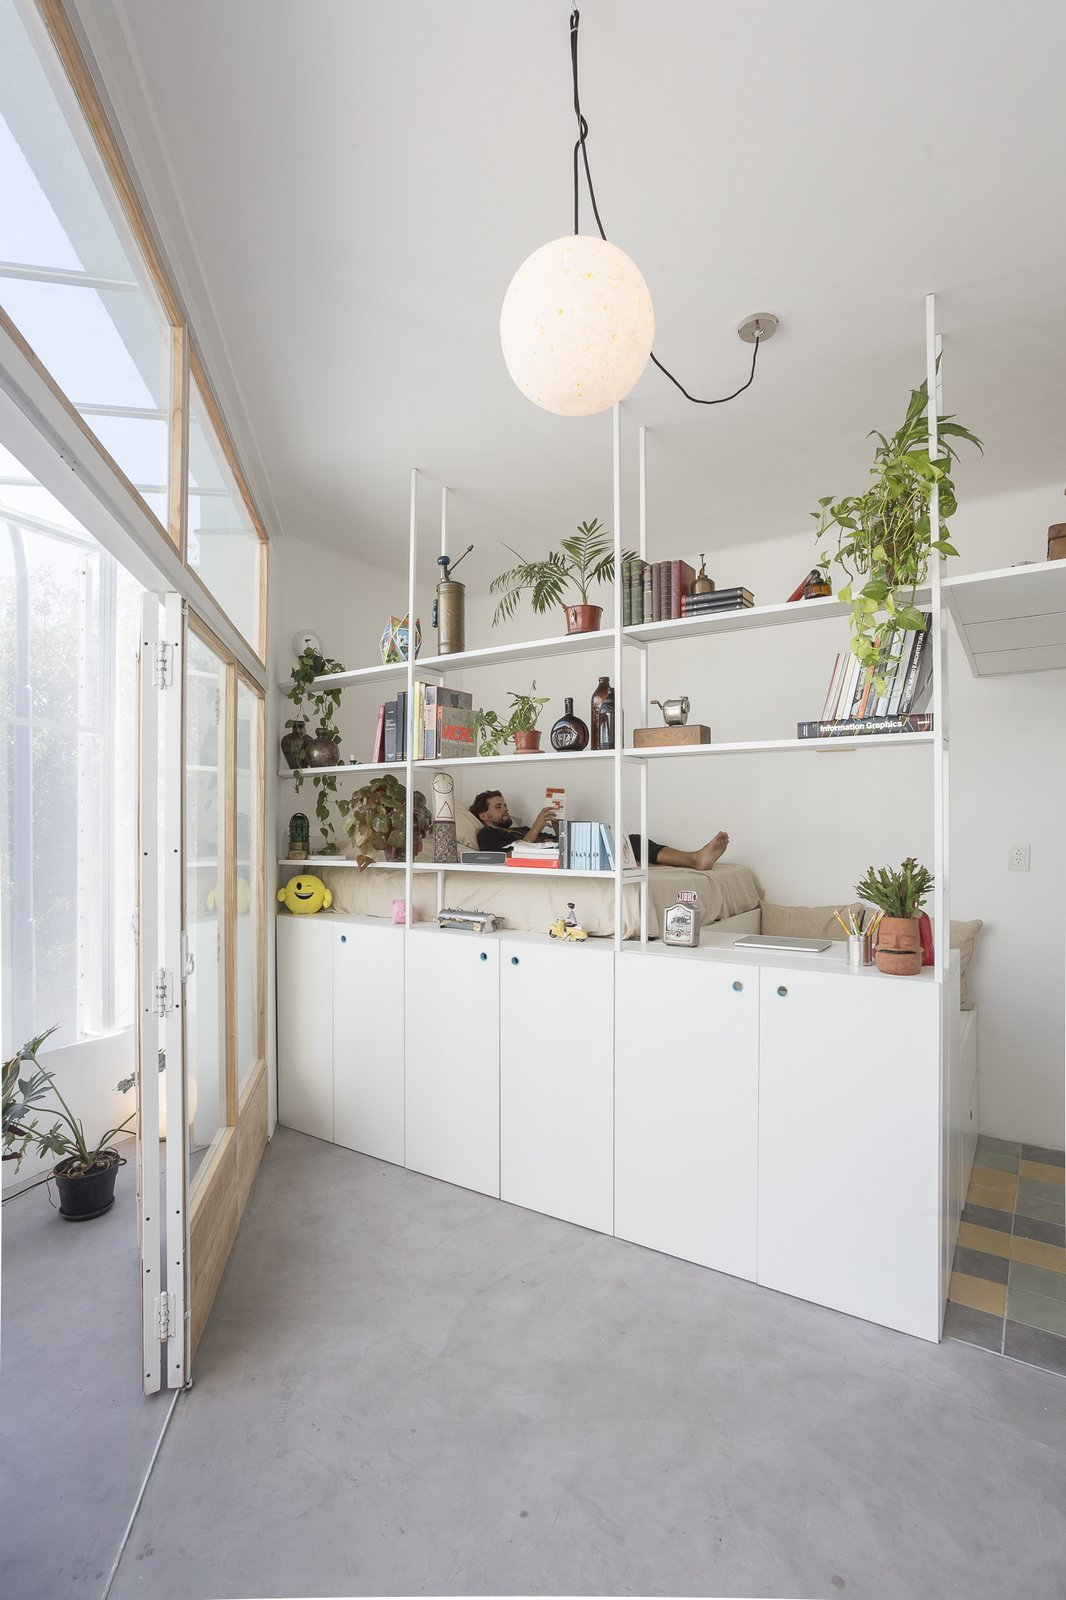 Bedroom, Pendant, Concrete, Bed, Storage, Shelves, and Ceramic Tile For the interiors, the architects have utilized every nook and cranny of the home to come up with smart storage solutions to maximize floor space.    Best Bedroom Shelves Pendant Photos from A Perforated Balcony Brings Ample Light Into a Tiny Abode